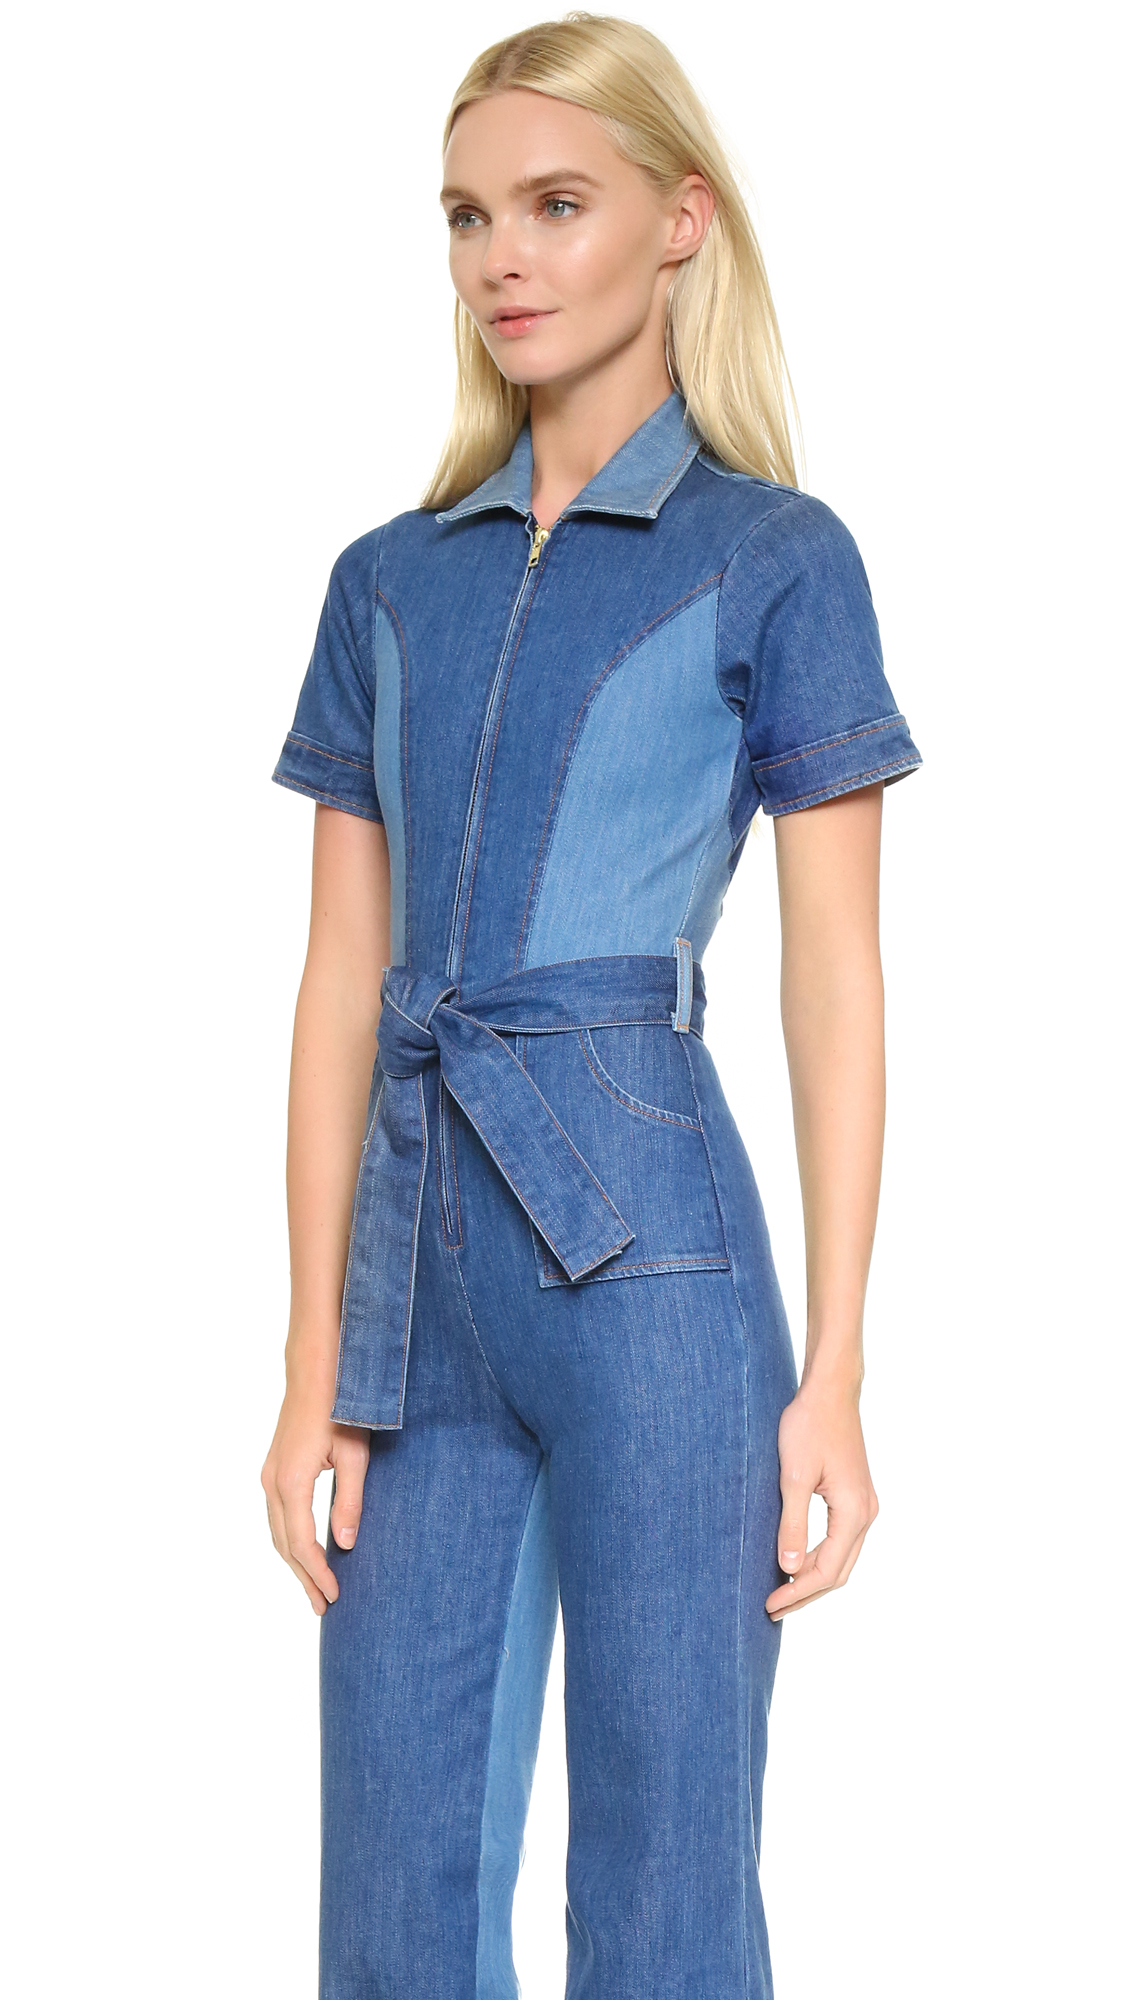 fac2219131c8 Stoned Immaculate Blue Jean Baby Jumpsuit